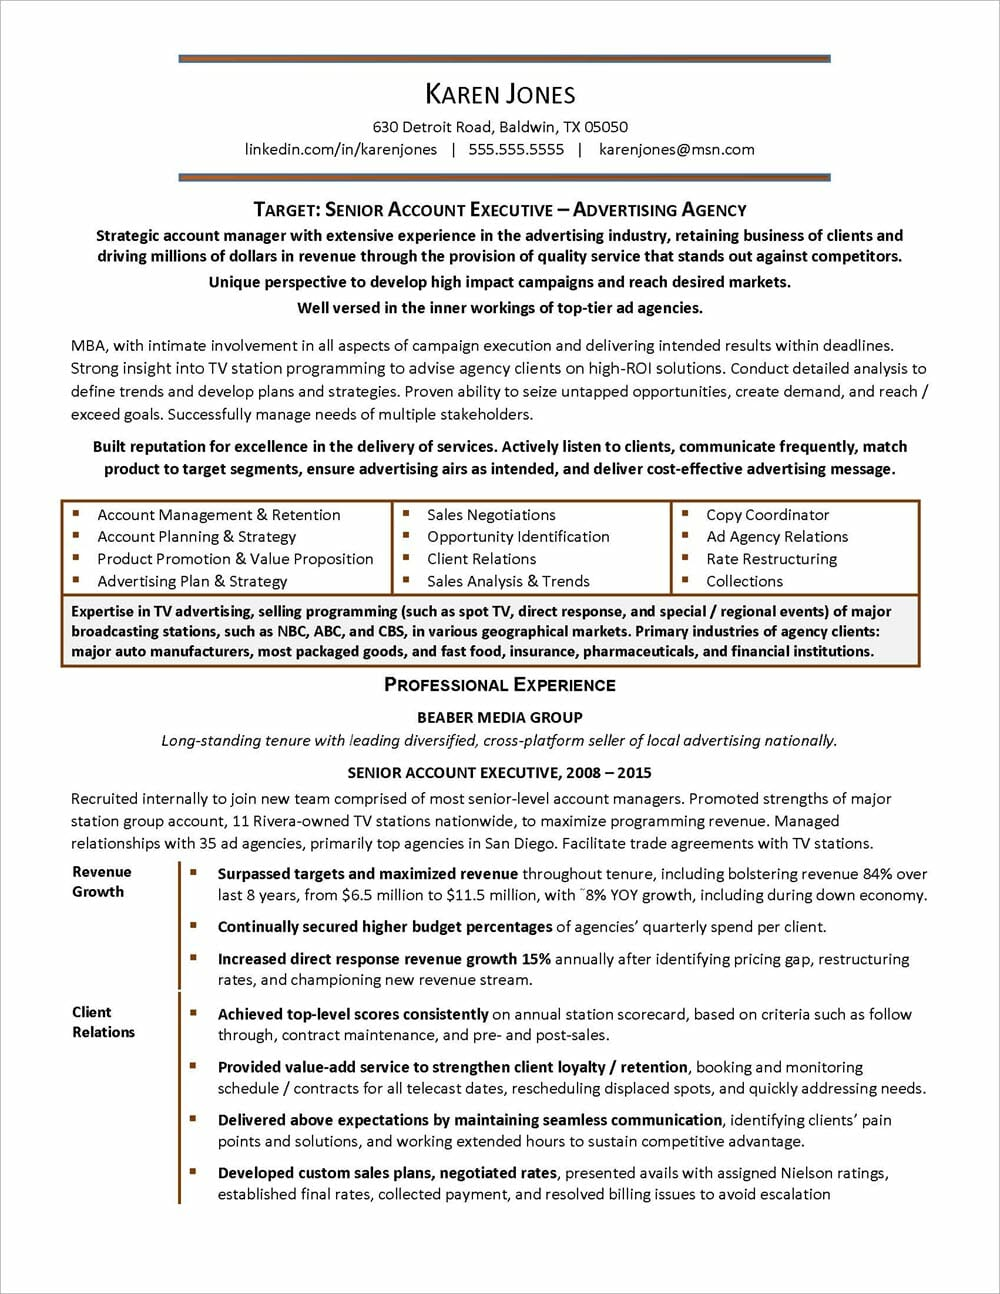 Advertising Agency Resume page 1